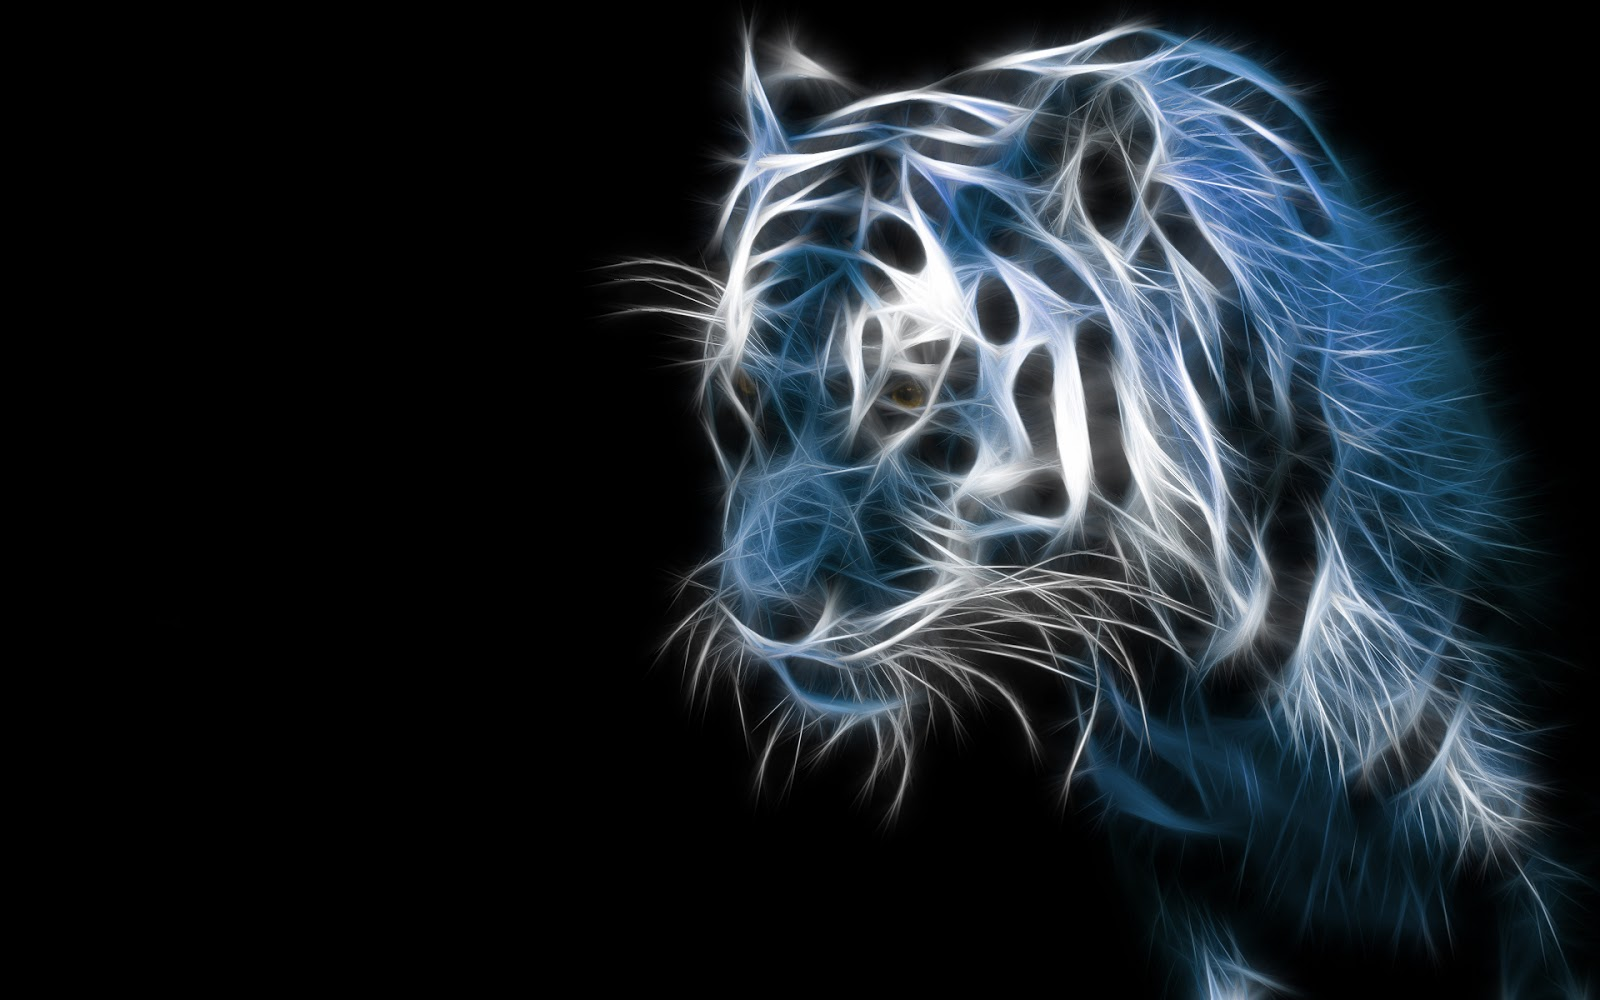 Tigre 3d fonds d 39 cran hd for Fond ecran 3d